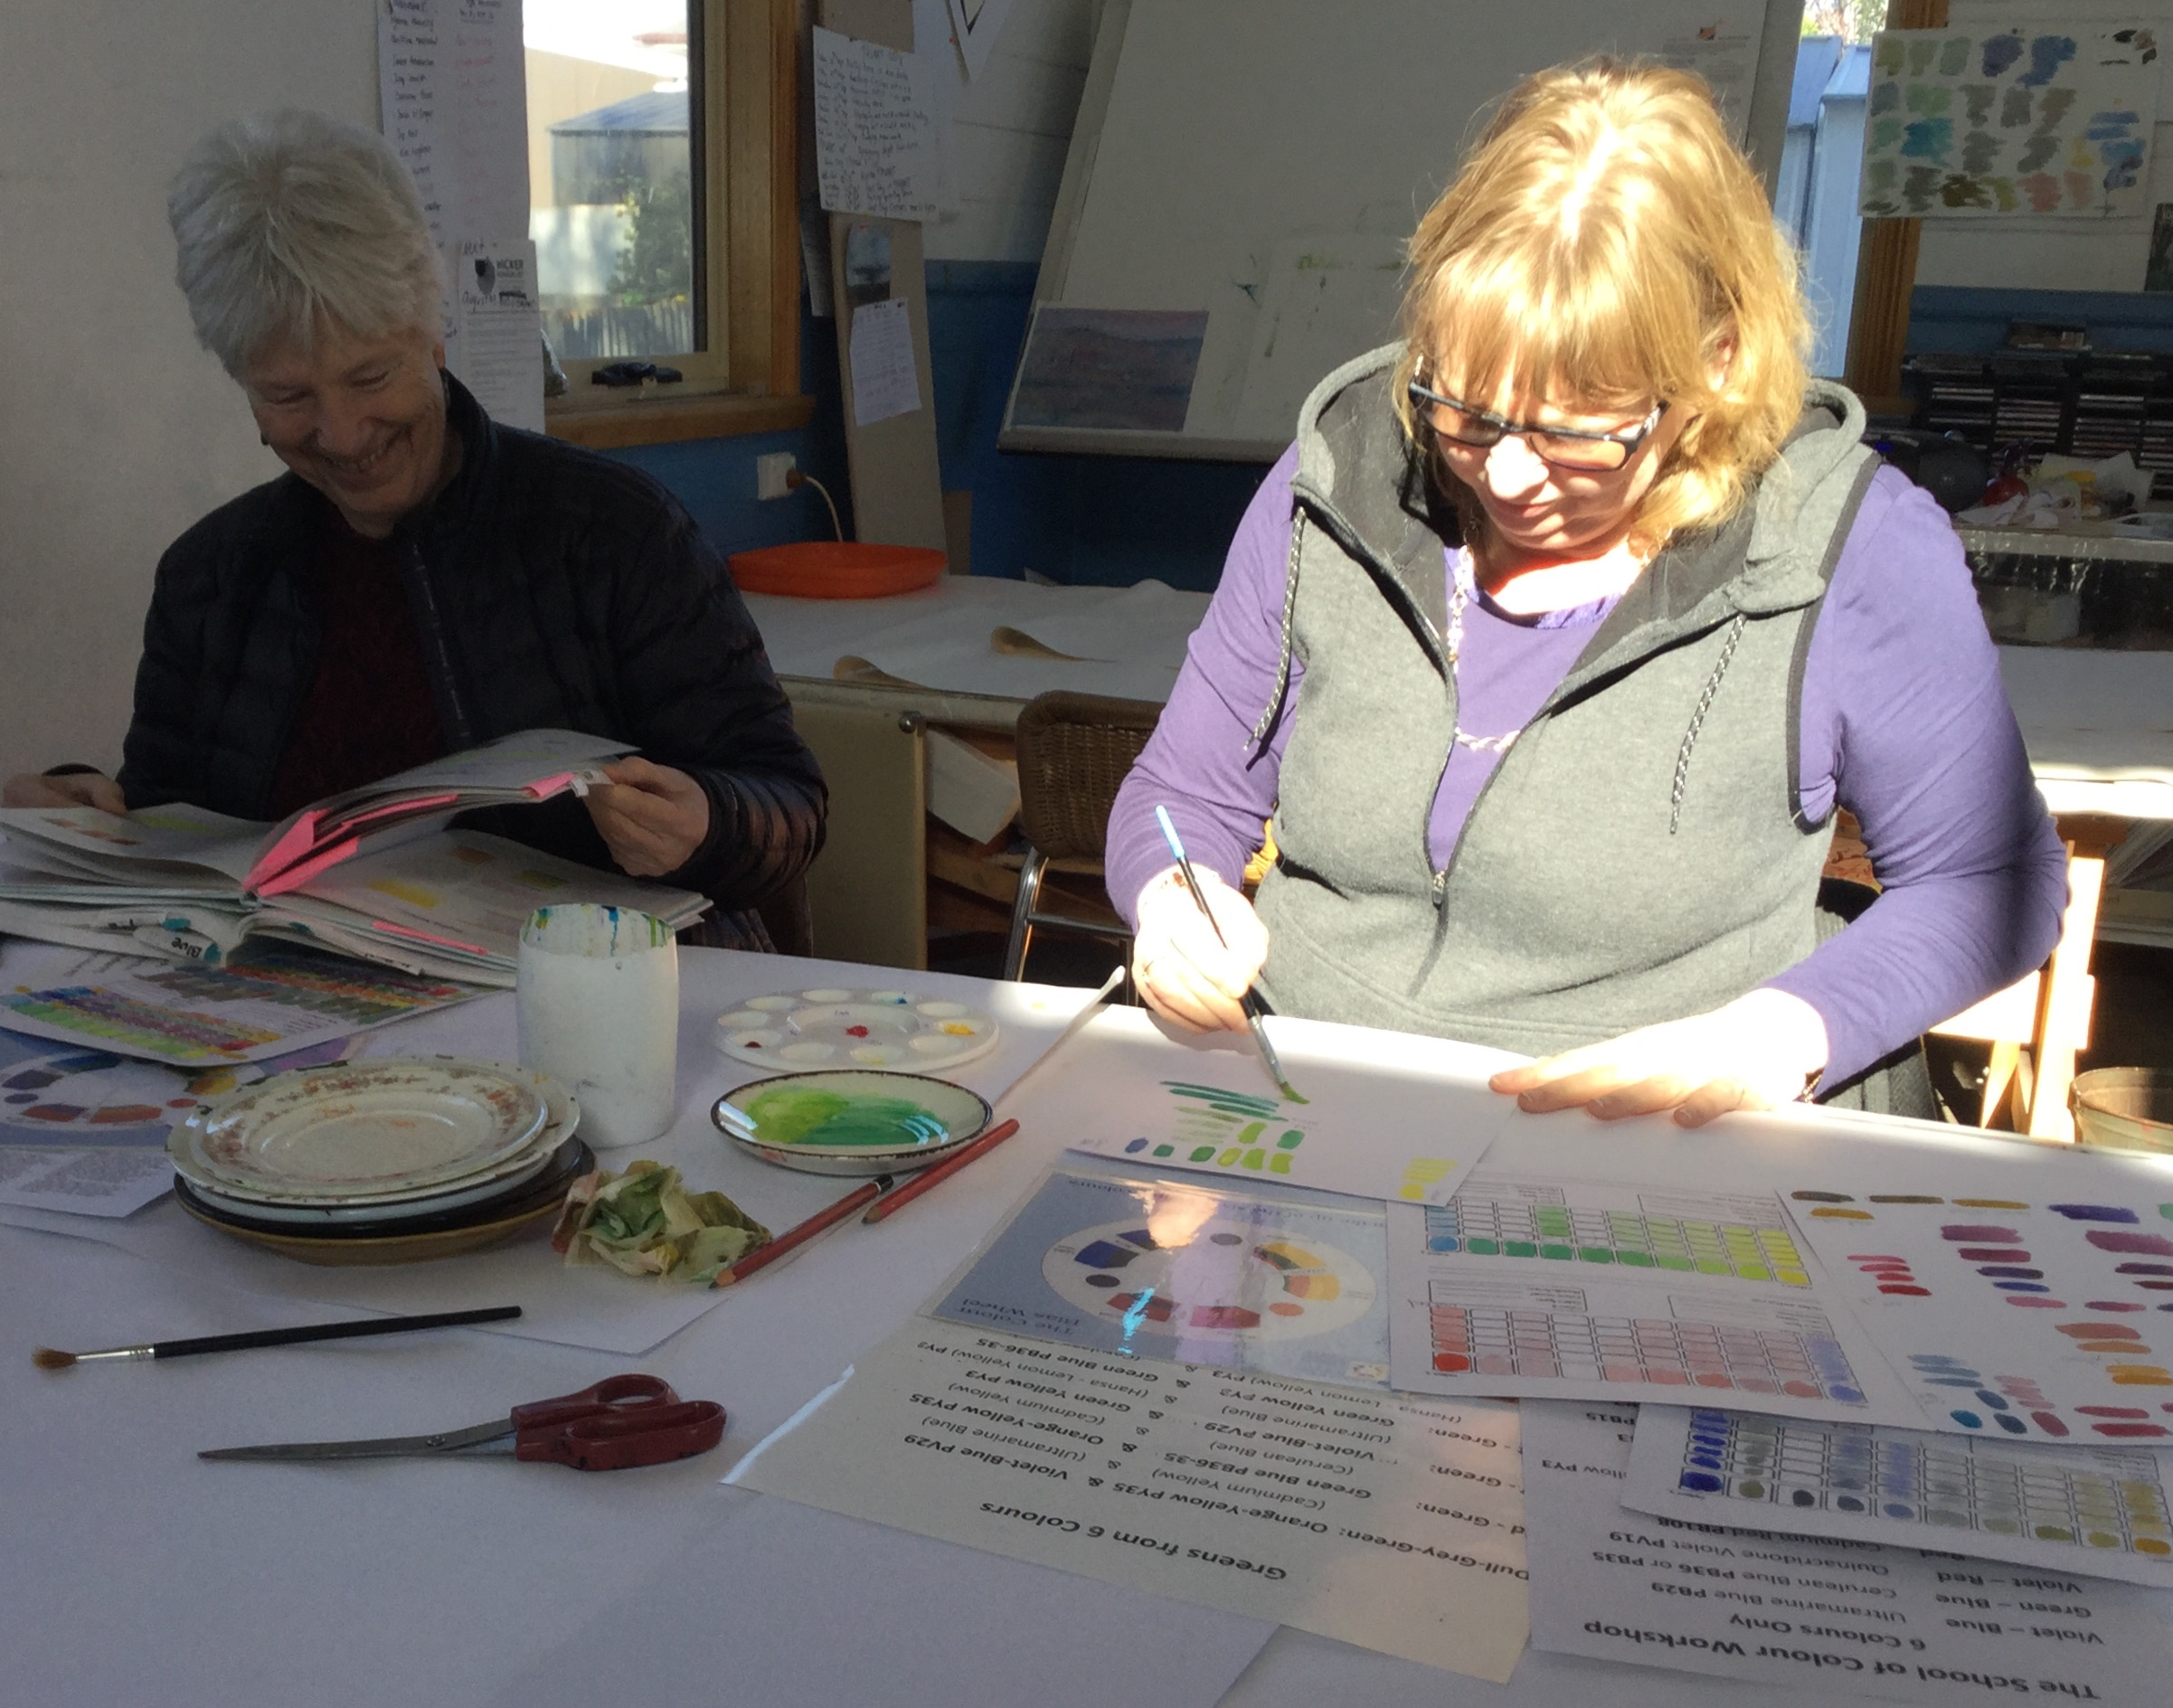 WORKSHOPS - Are held regularly. Join our mailing list to find out more.